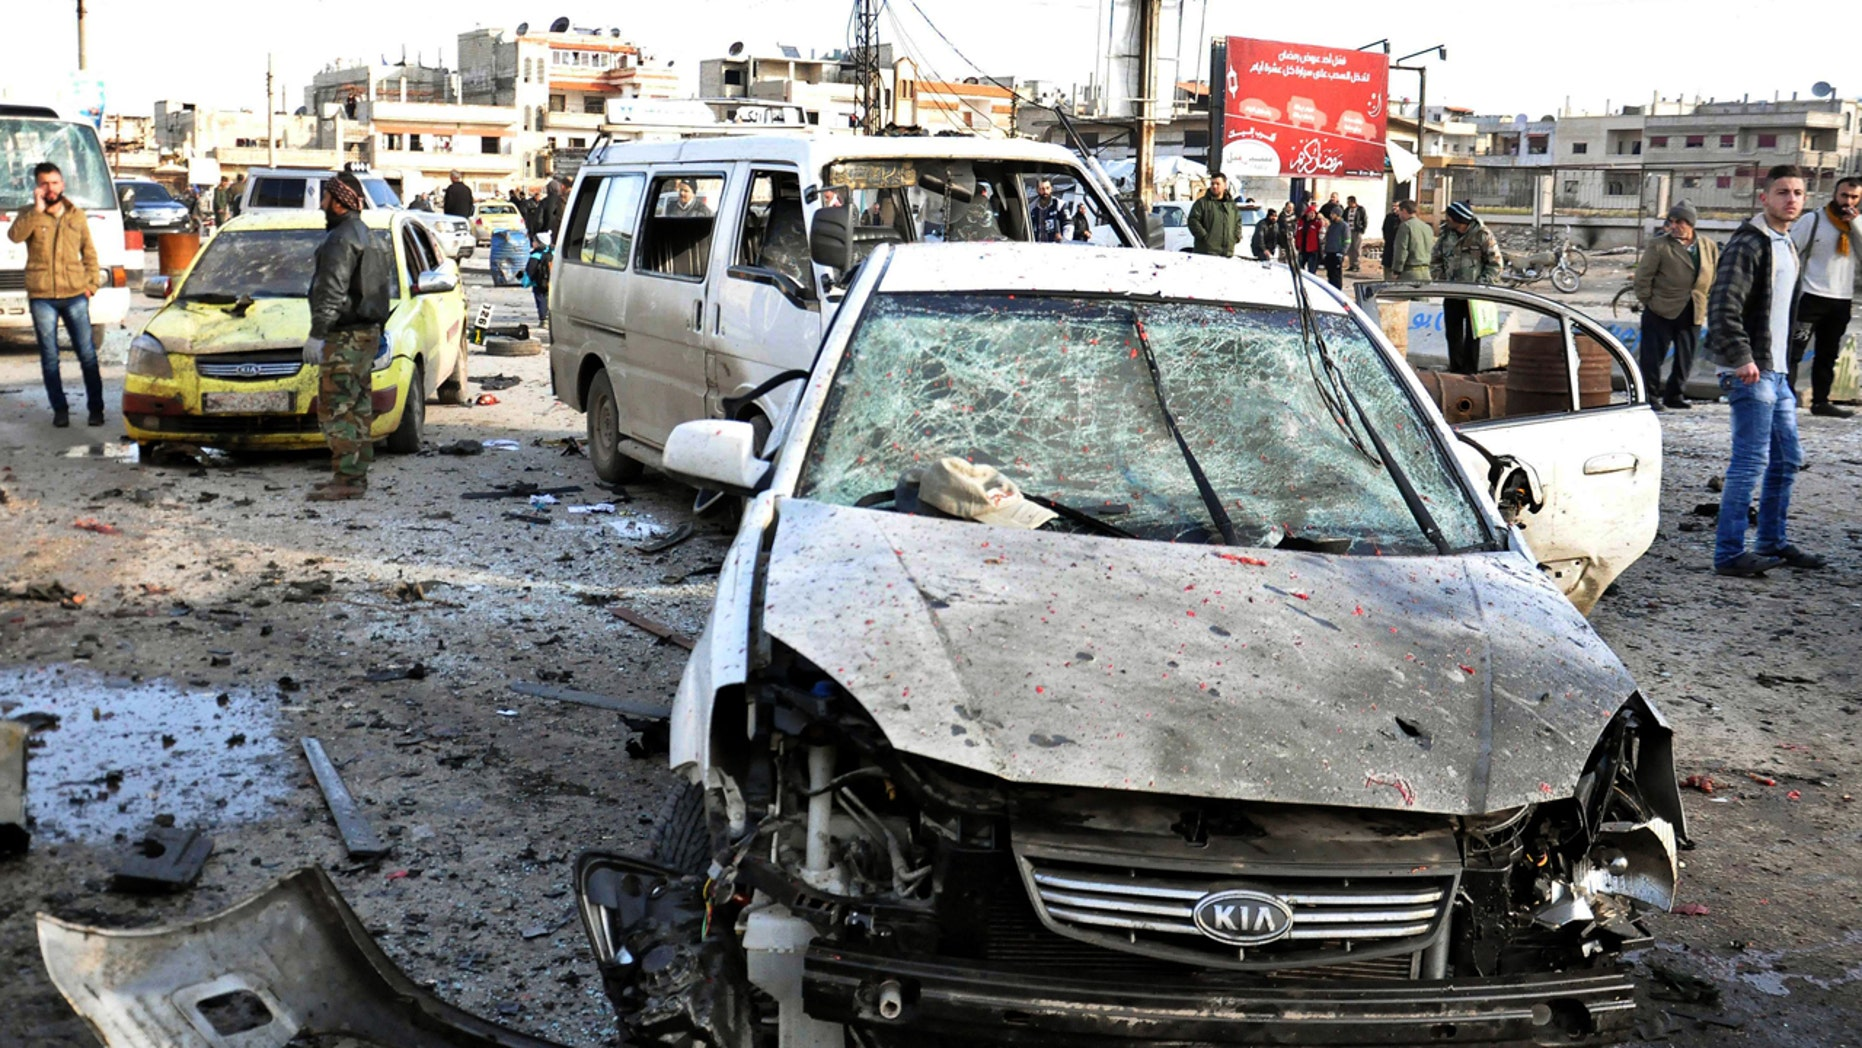 Jan. 26, 2016: In this photo released by the Syrian official news agency SANA, Syrian citizens gather at the scene where twin bombs exploded at a government-run security checkpoint, at the neighborhood of Zahraa, in Homs province, Syria. (SANA via AP)